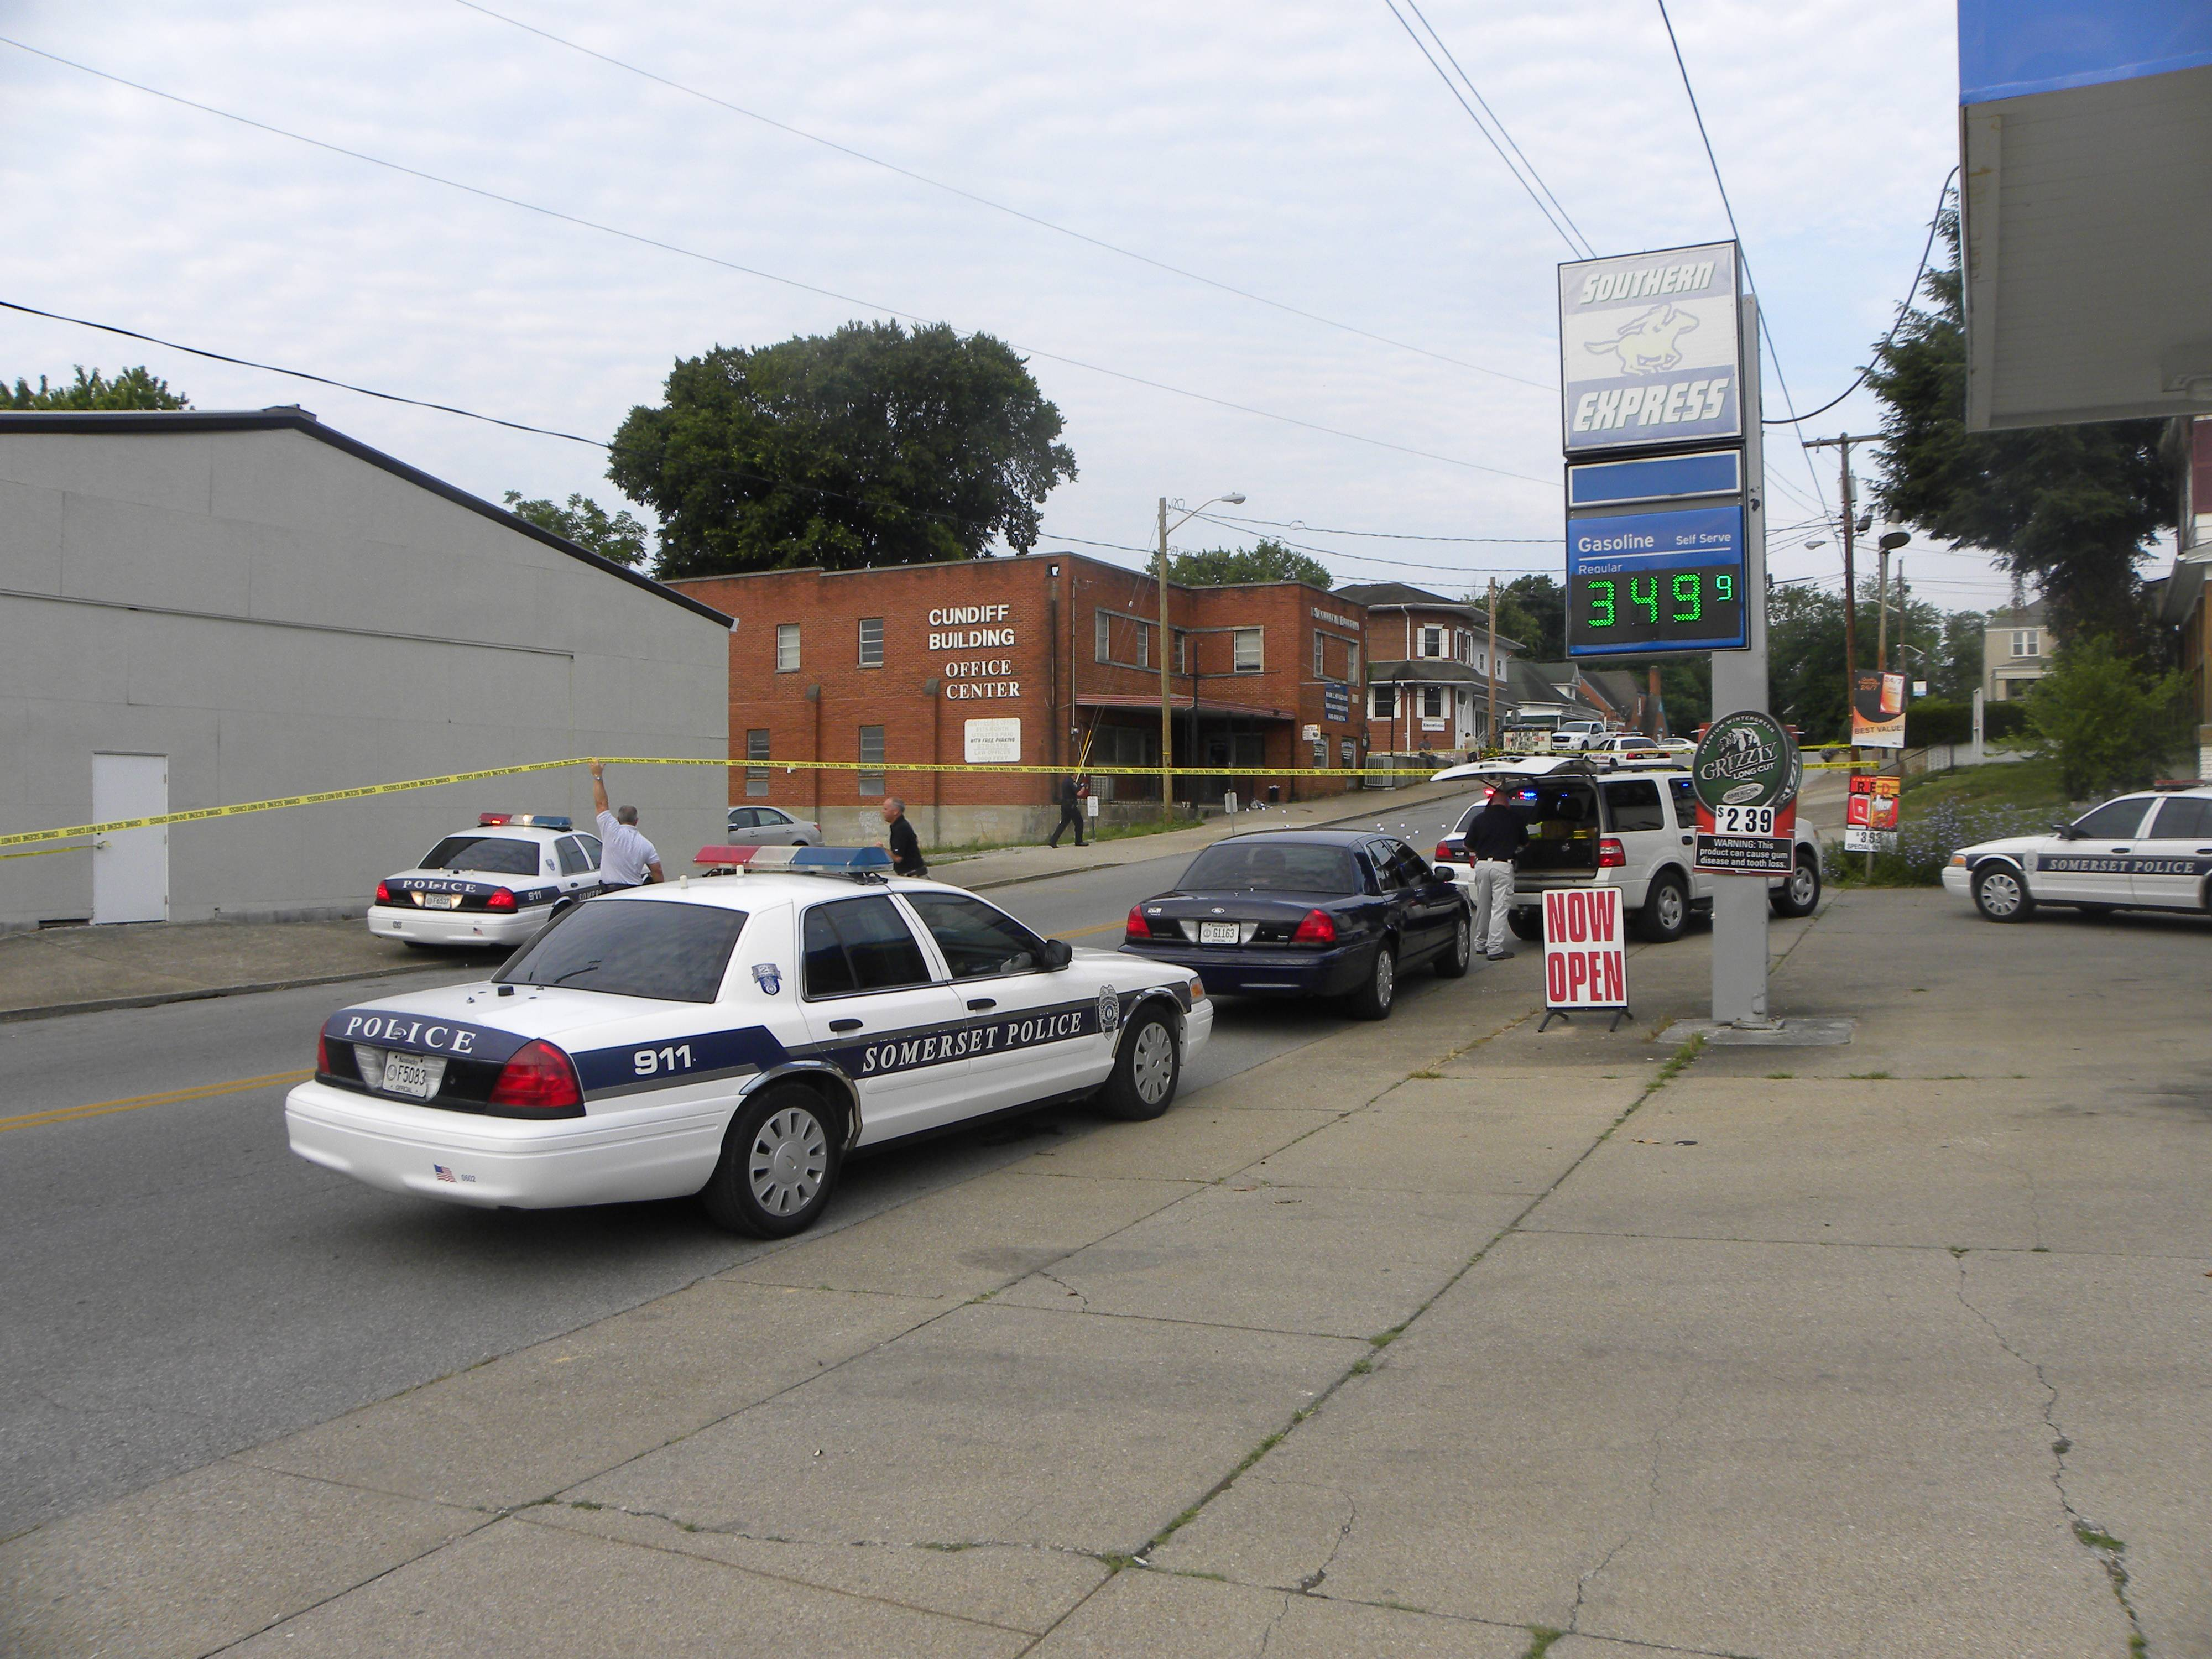 Somerset Police respond to the scene of a shooting Friday on West Mt. Vernon Street in Somerset, Kentucky. Somerset police say Mark Stanziano, 57, a defense attorney well known in his small, southern Kentucky town, was shot and killed outside of his law office.